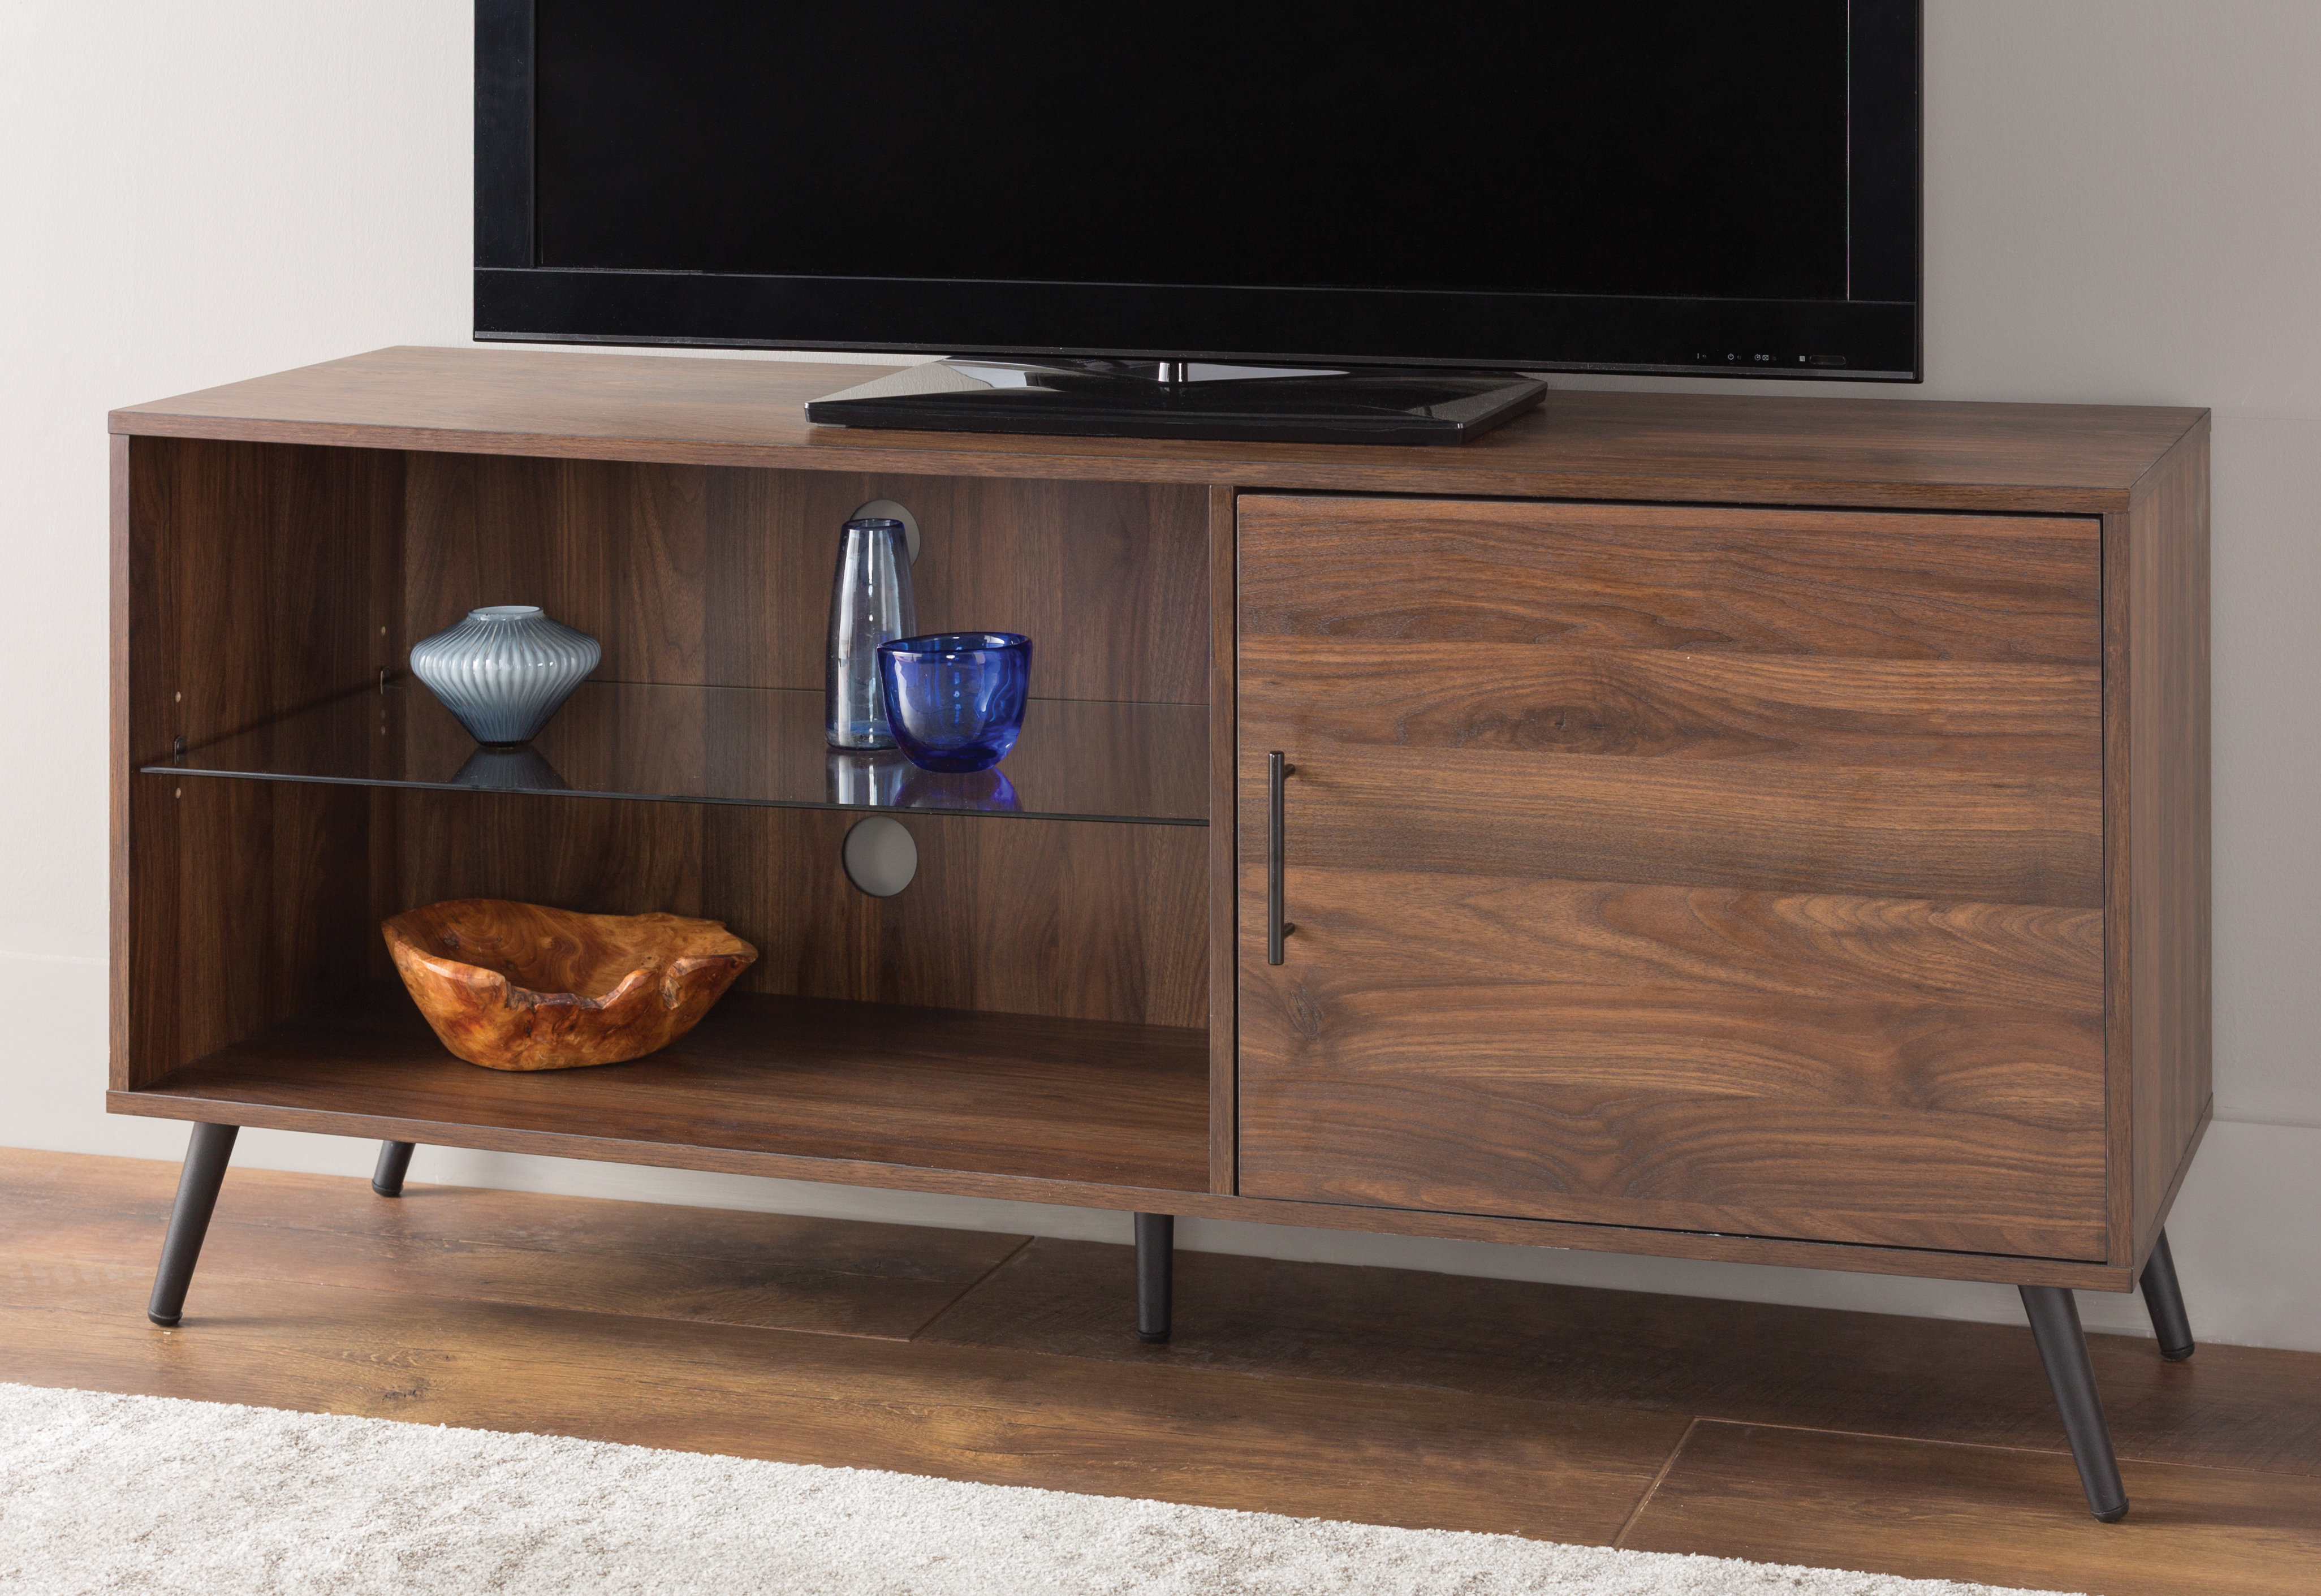 Wayfair Intended For Famous Single Shelf Tv Stands (View 7 of 20)